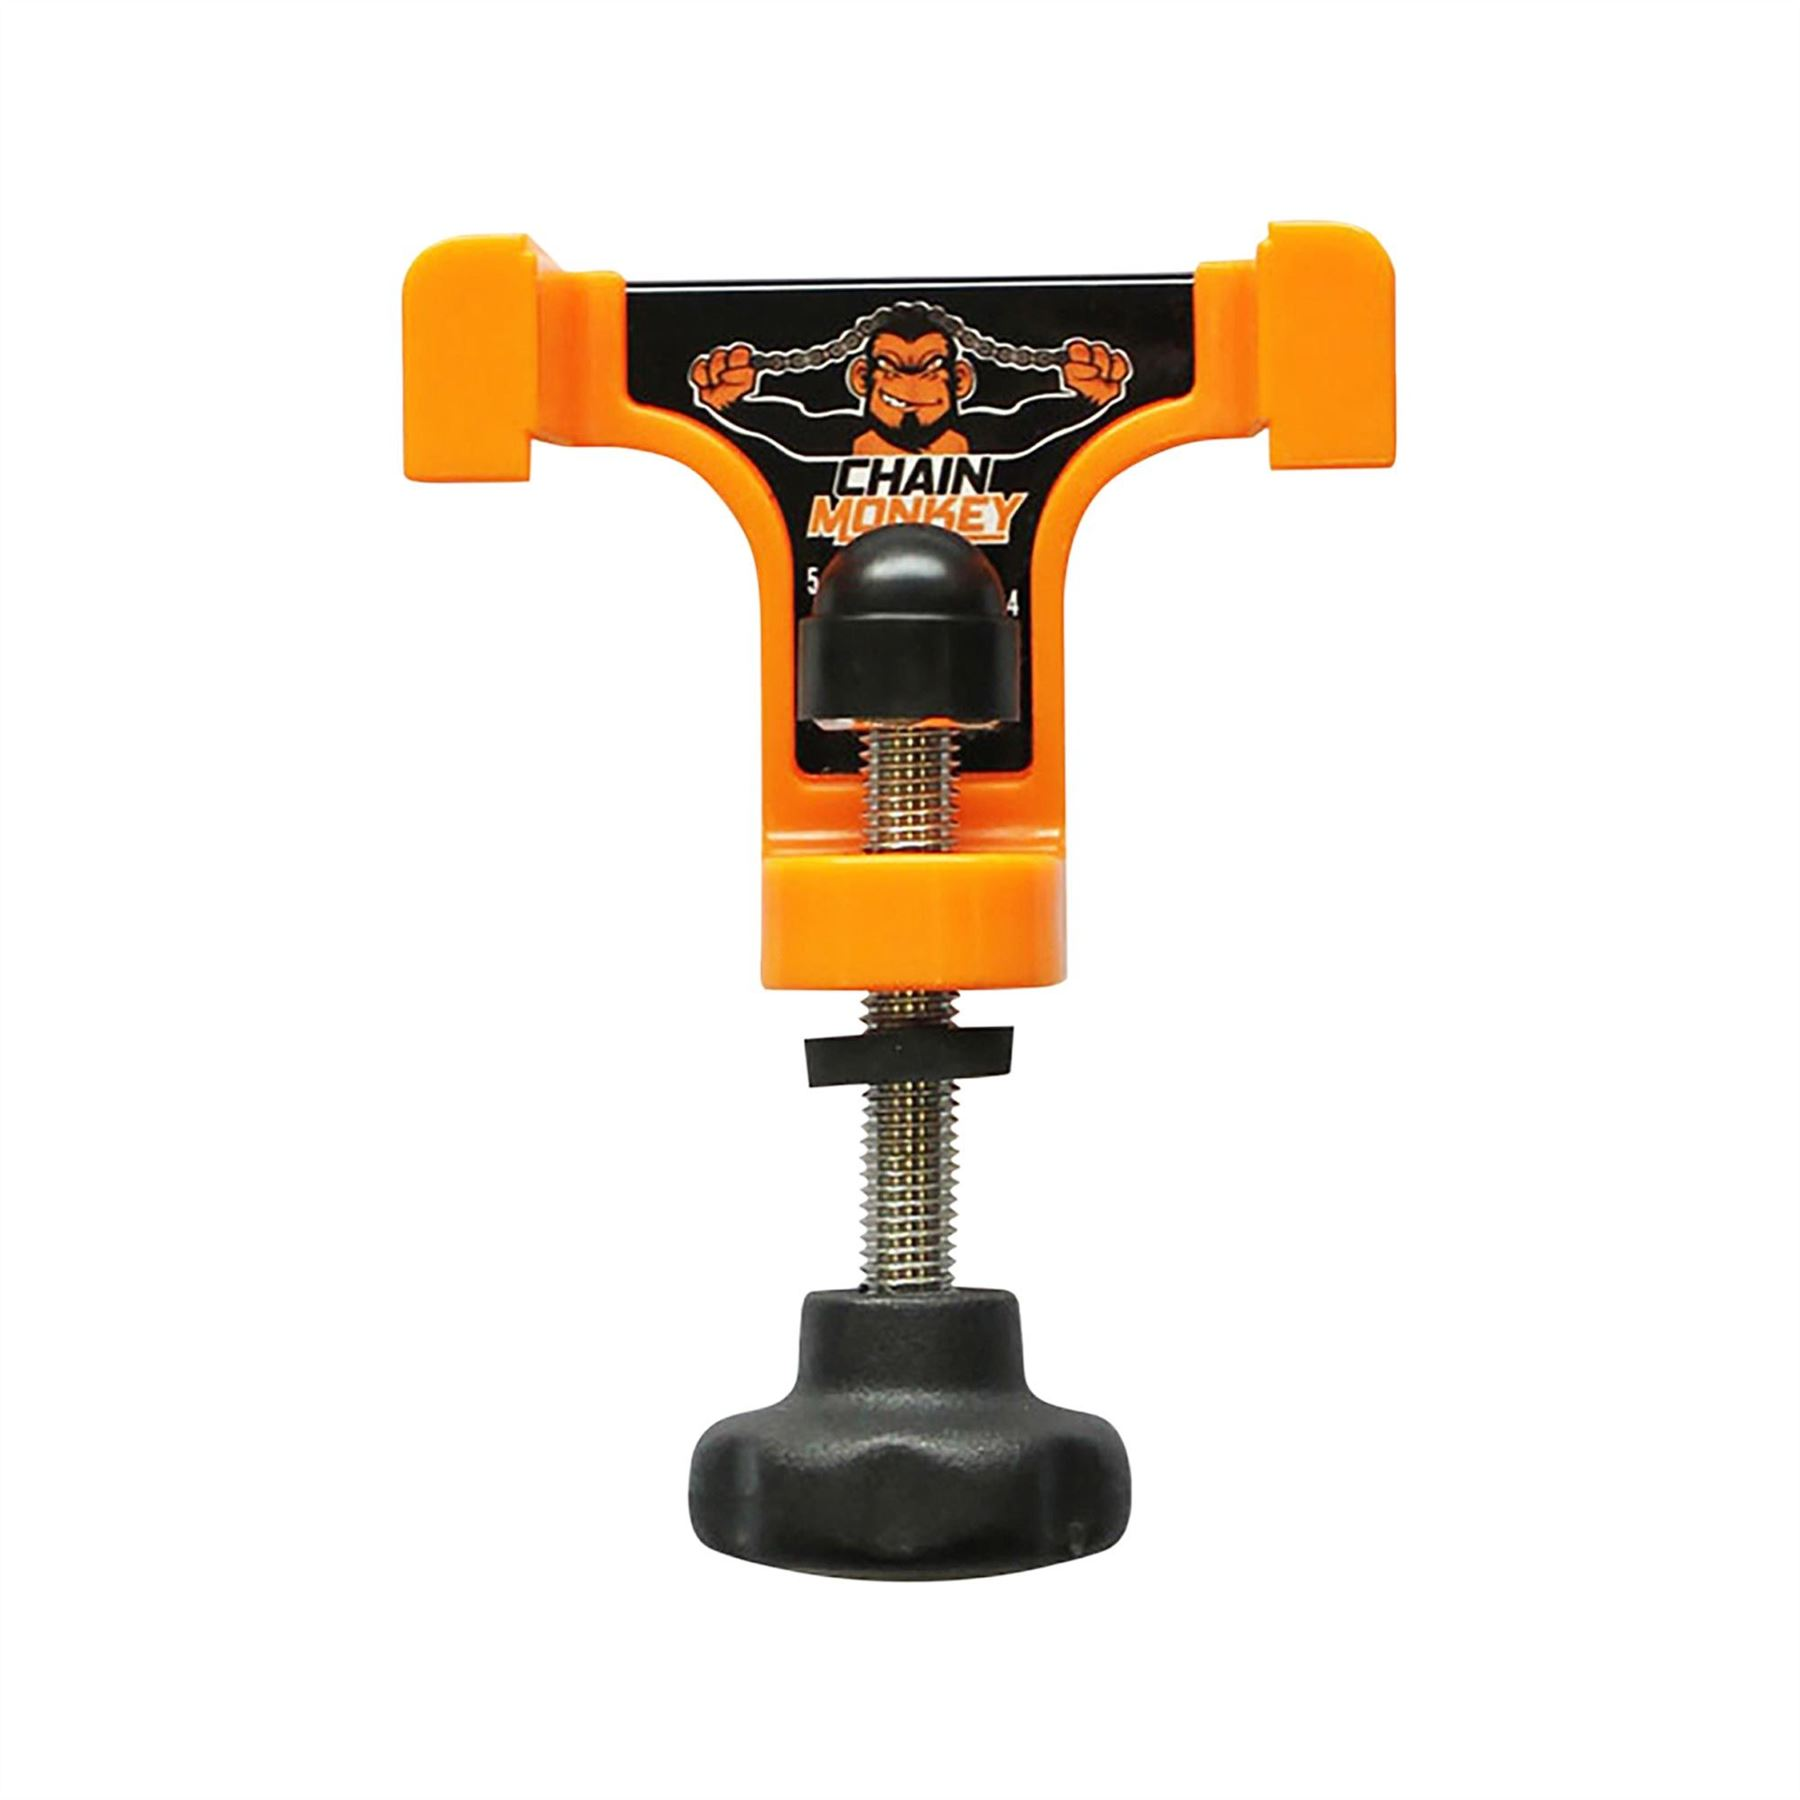 ALUMINIUM BODY MOTORCYCLE QUICK CHAIN ALIGNMENT TOOL EXTENDS LIFE OF CHAINS